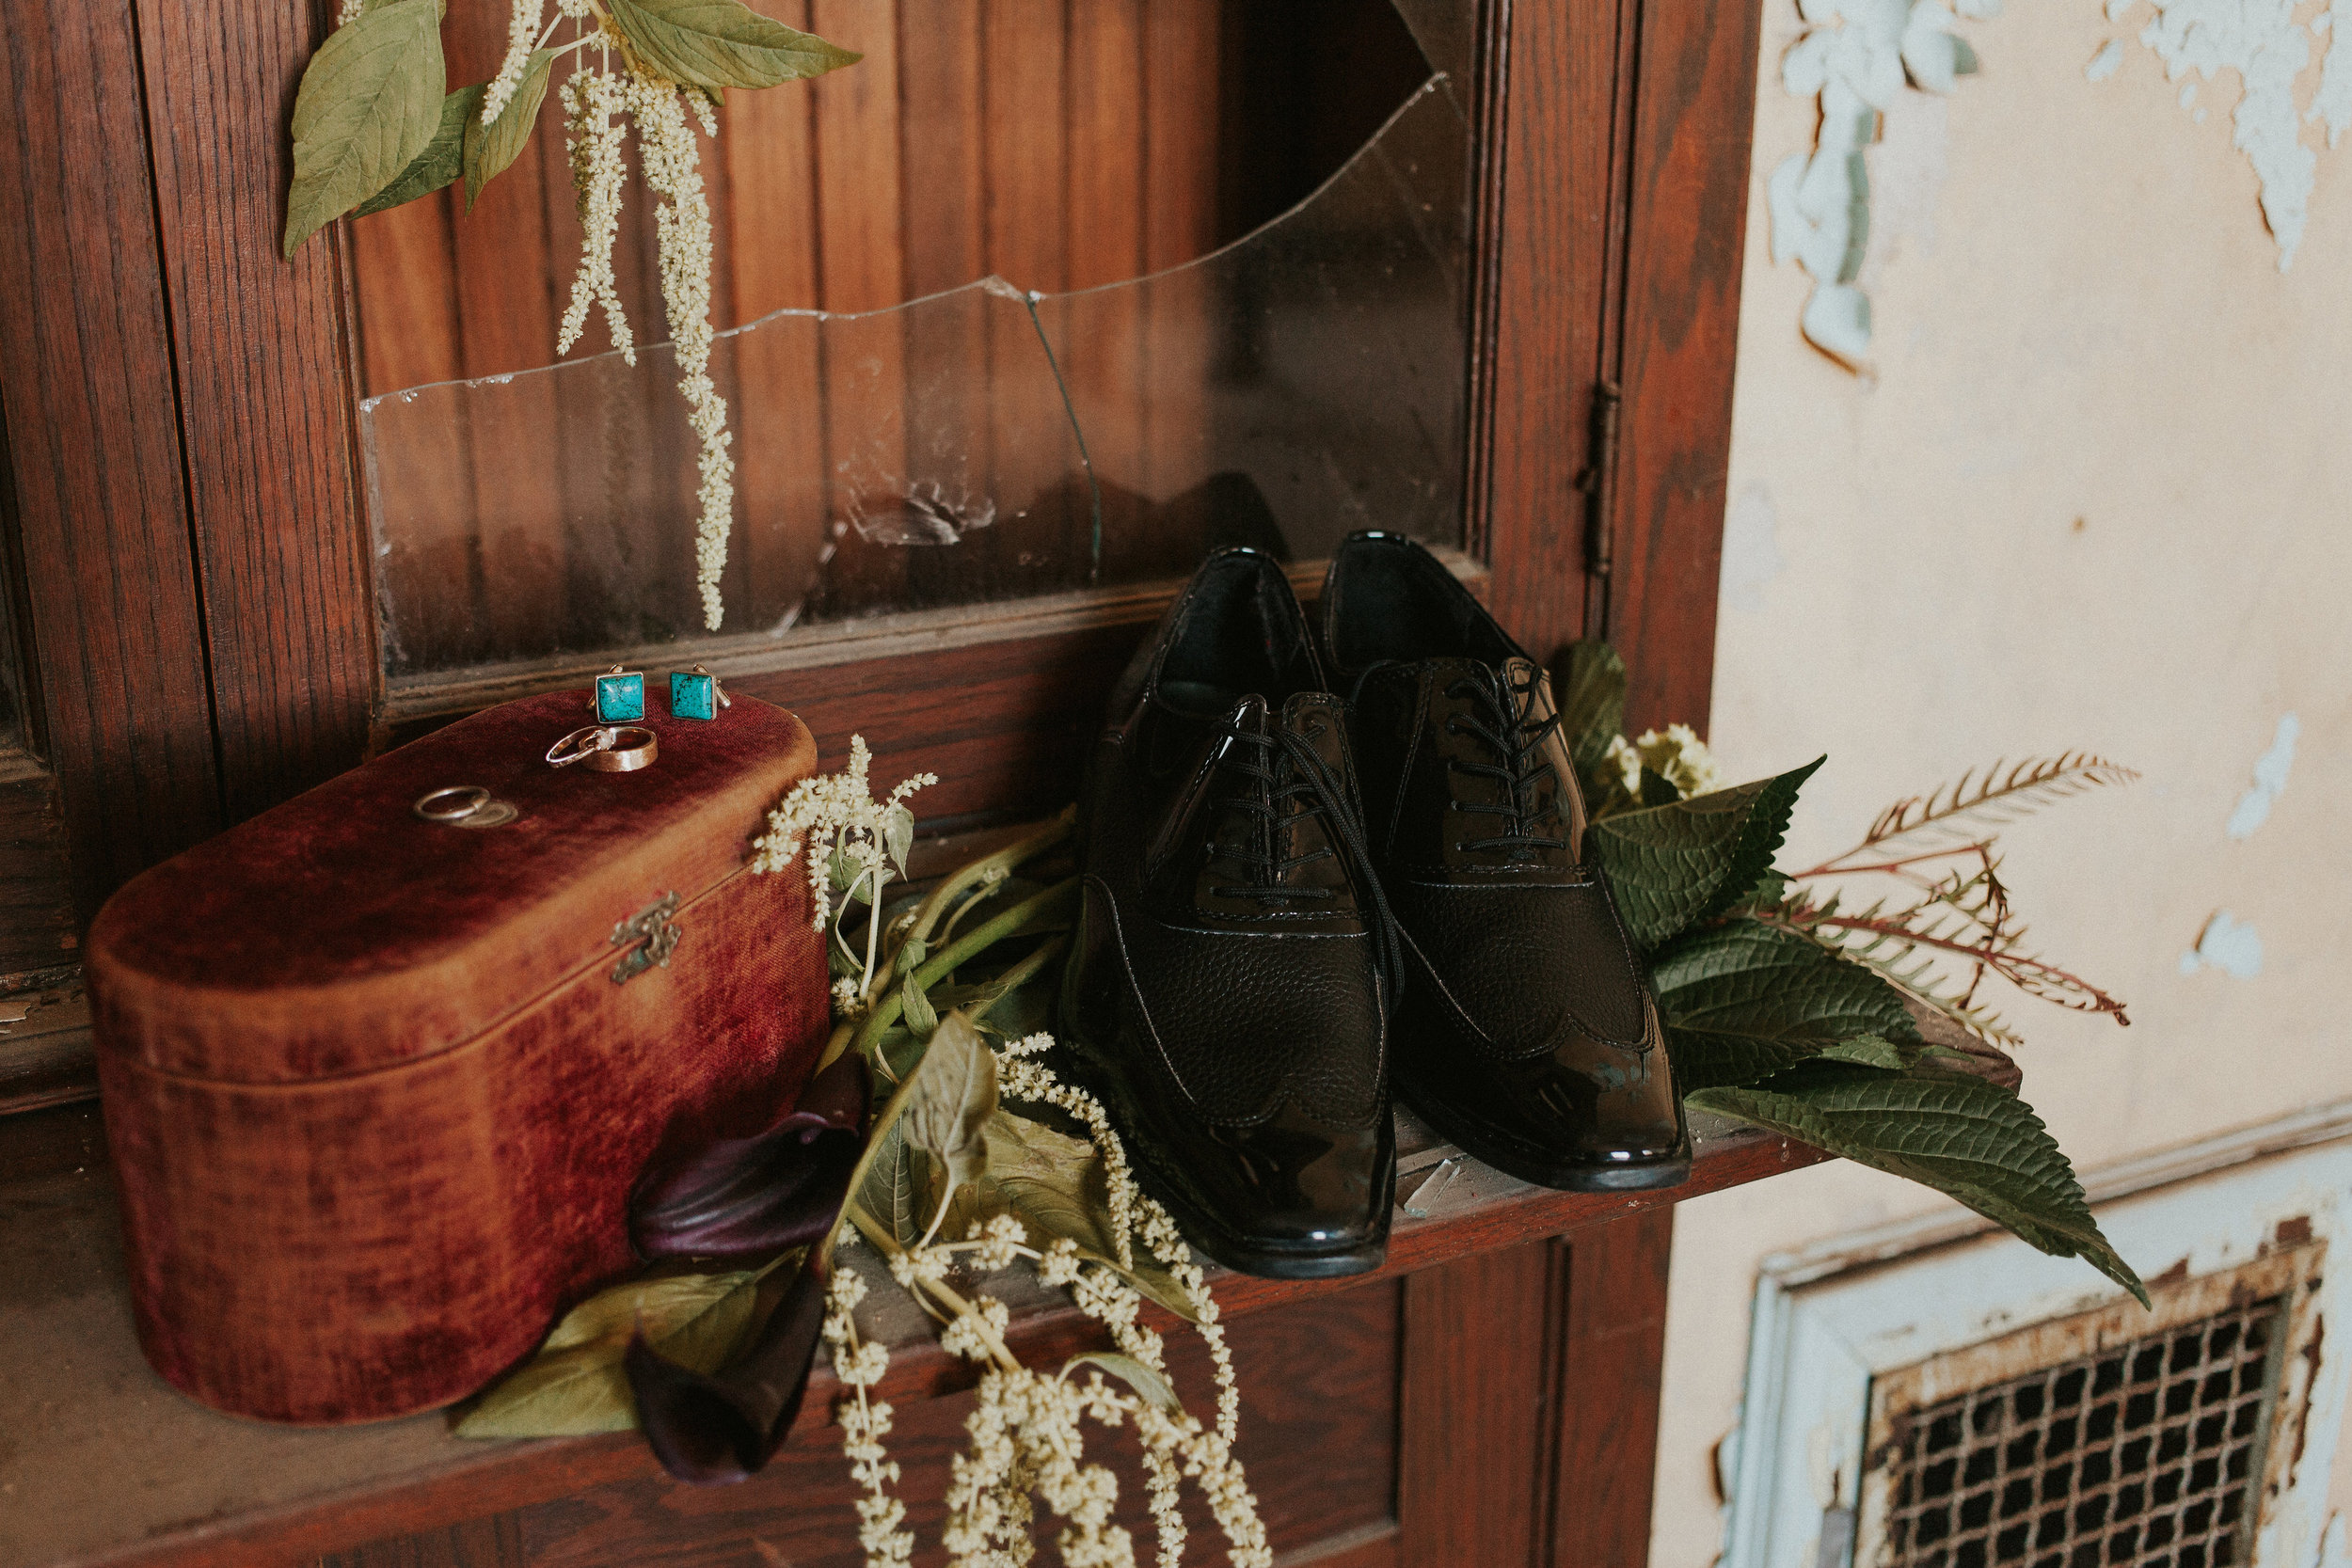 gothic theme photo session with black shoes and crafted wedding rings displayed on an old vintage suitcase, with hanging flowers and greenery in the background and candles